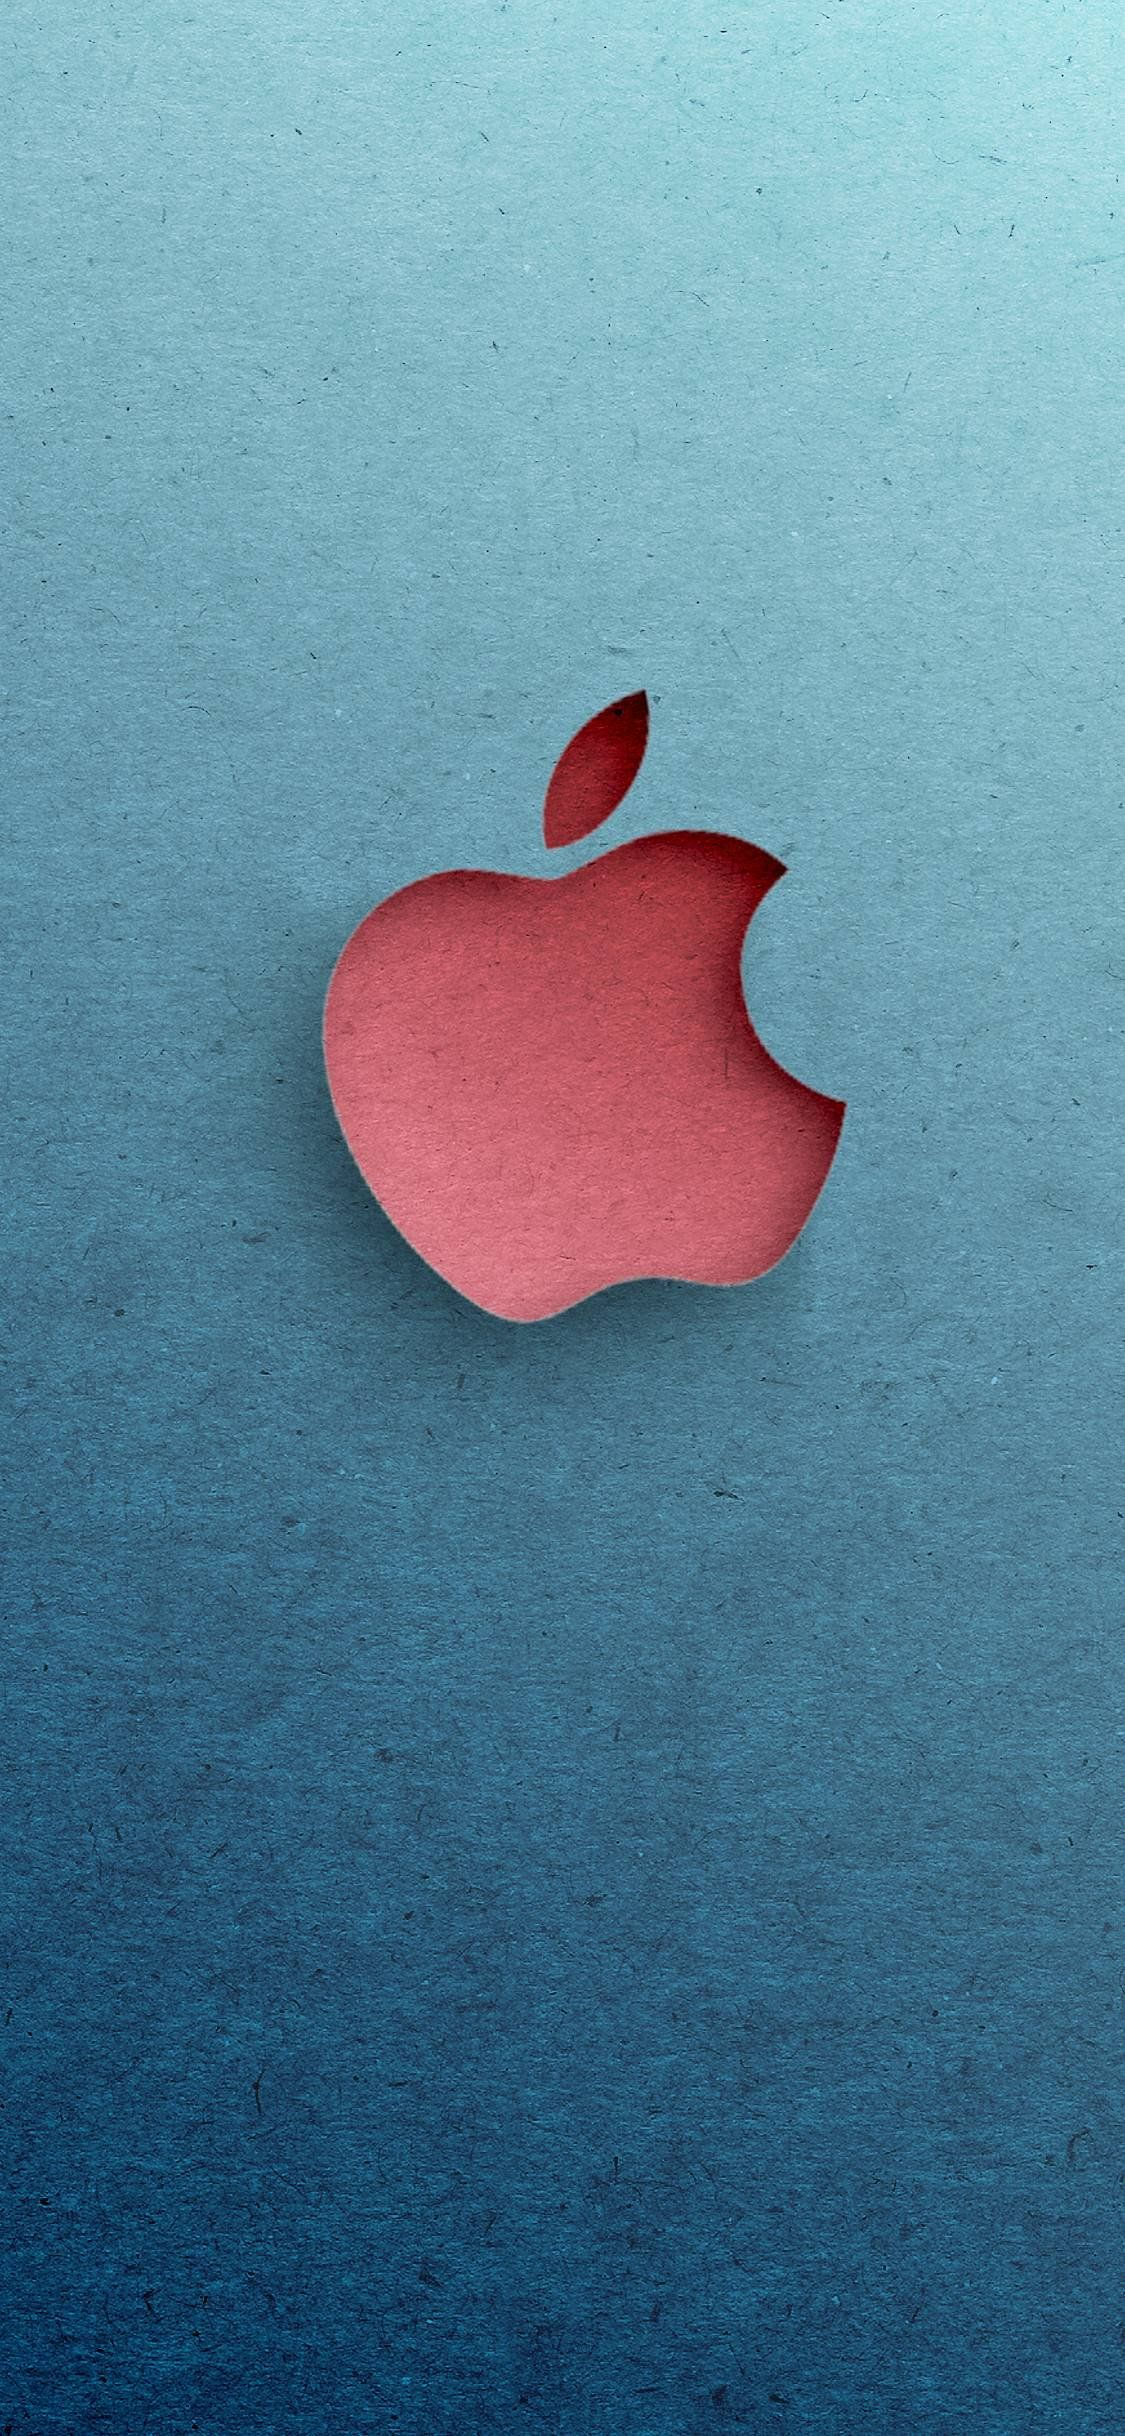 Pin By My Cell On Photography Apple Wallpaper Iphone Iphone Wallpaper Logo Apple Logo Wallpaper Iphone